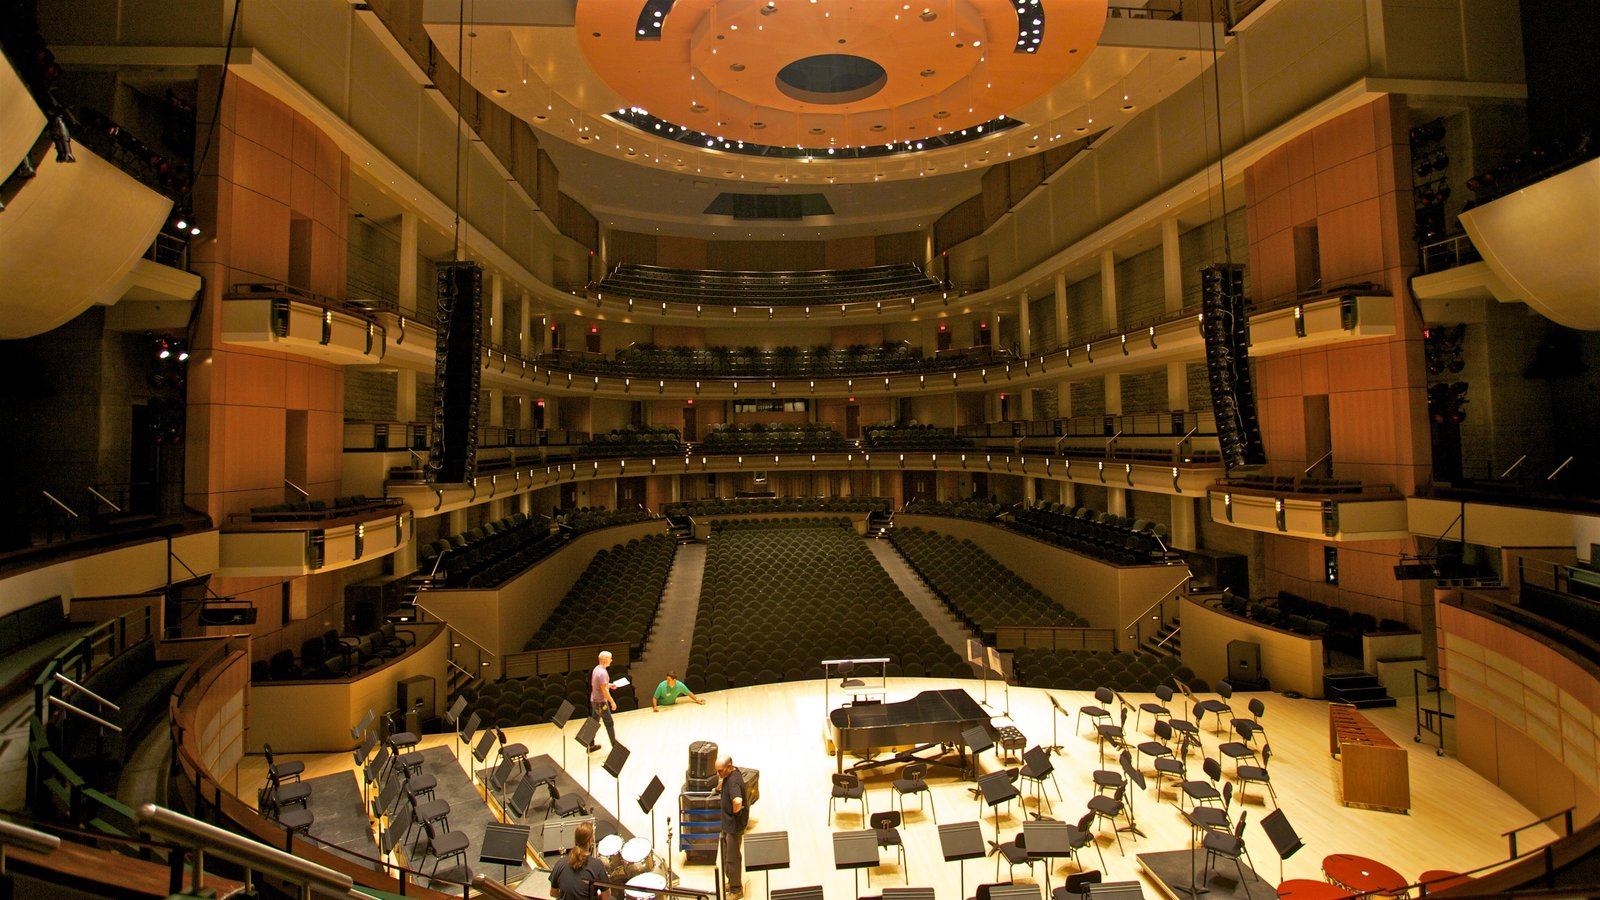 Francis Winspear Centre for Music featuring interior views and theatre scenes